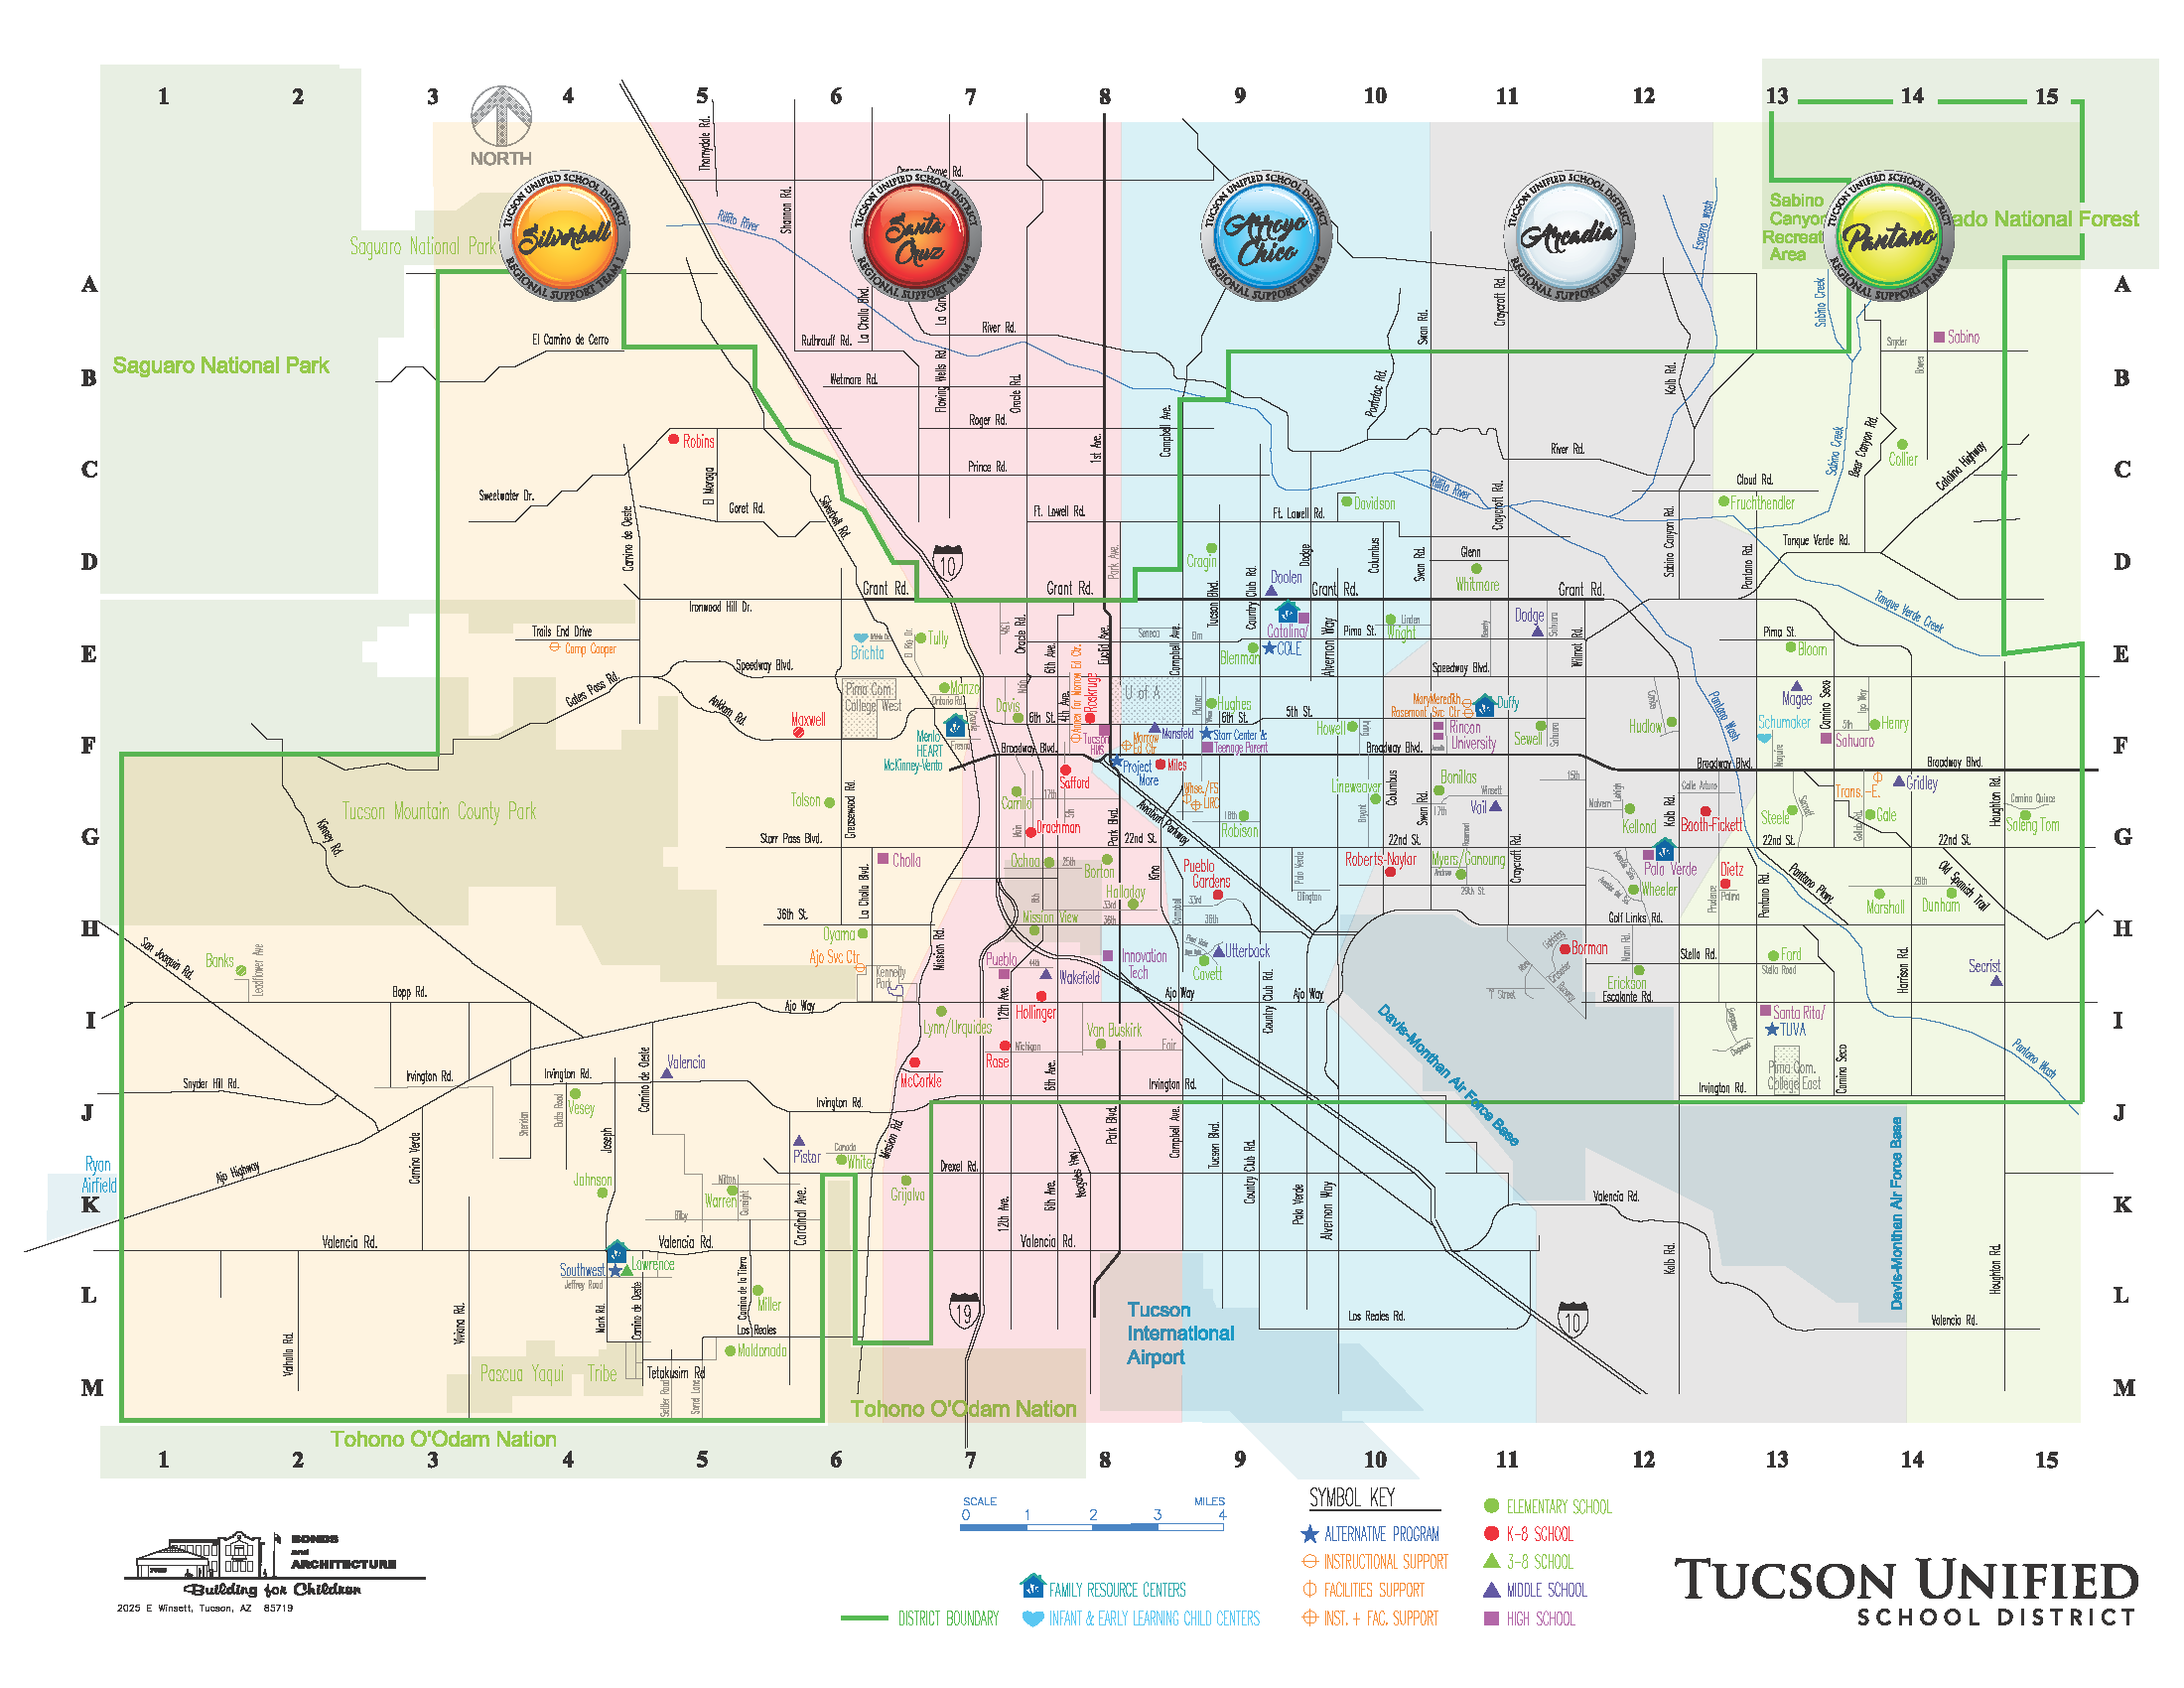 This map shows the Tucson Unified School District regions from west to east: Silverbell, Santa Cruz, Arroyo Chico, Arcadia, and Pantano.  It shows the district's boundaries: in the southWest by the Tohono O'Odam Nation, in the northwest by the Saguaro National Park, in the northeast by the Coranado National Forest, in the southeast by the Davis-Monthan Air Force Base.  Also pinpointed on the map are the locations of district sites, including: Family Resource Centers, Infant & Early Learning Child Centers, Alternative Programs, Instructional Support, Facilities Support, Instructional and Facilities Support, Elementary Schools, K-8 Schools, 3-8 Schools, Middle Schools, and High Schools.